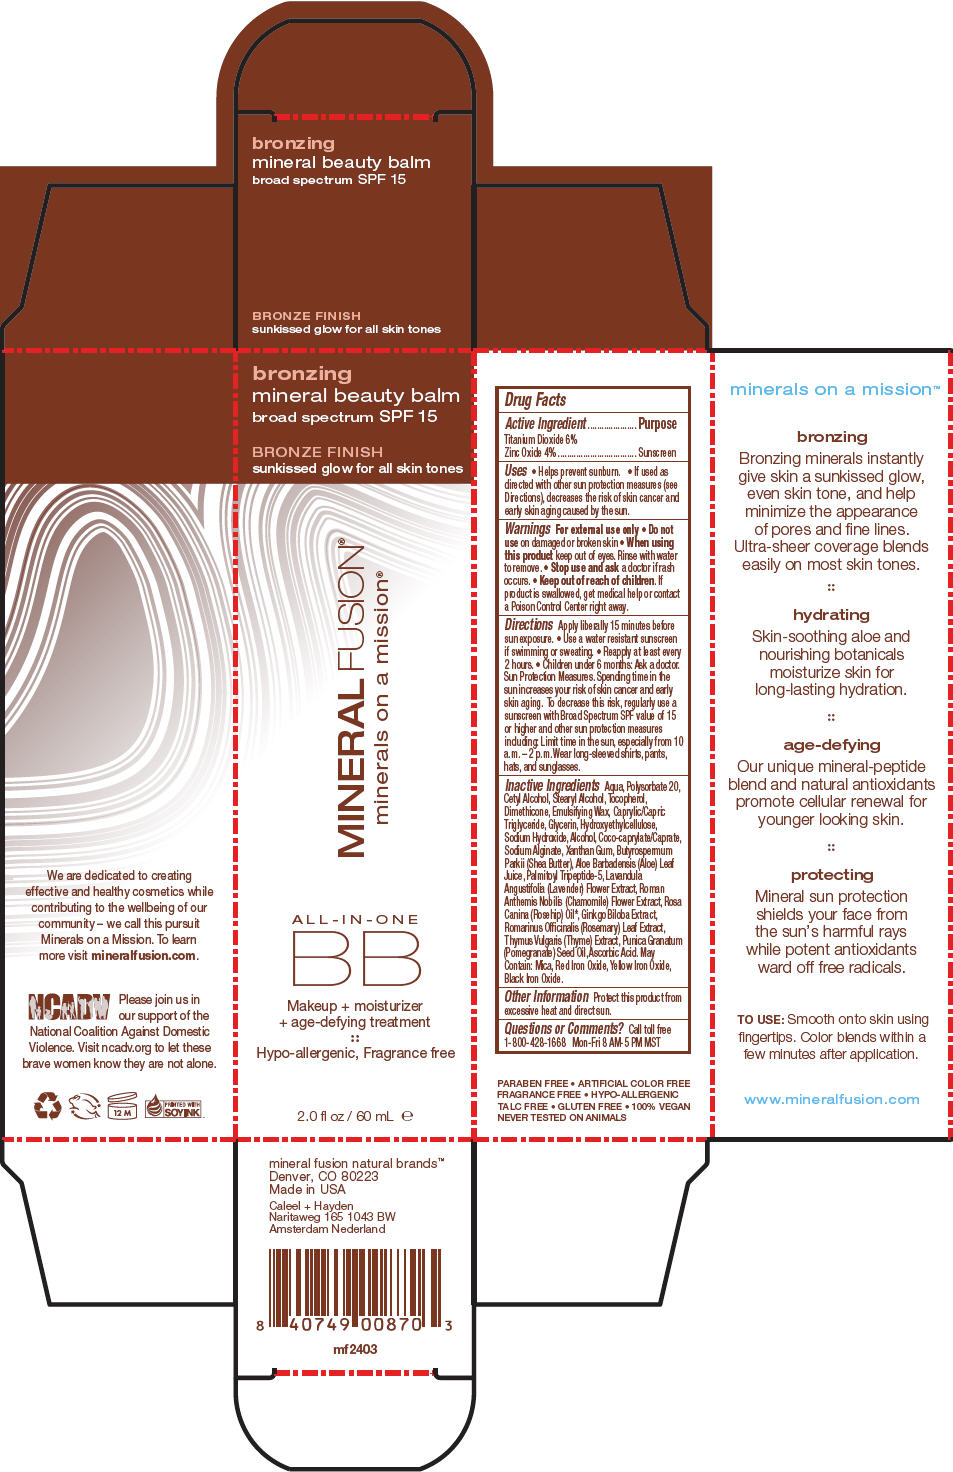 Bronzing Mineral Beauty Balm Spf 15 (Titanium Dioxide And Zinc Oxide) Cream [Mineral Fusion Natural Brands]